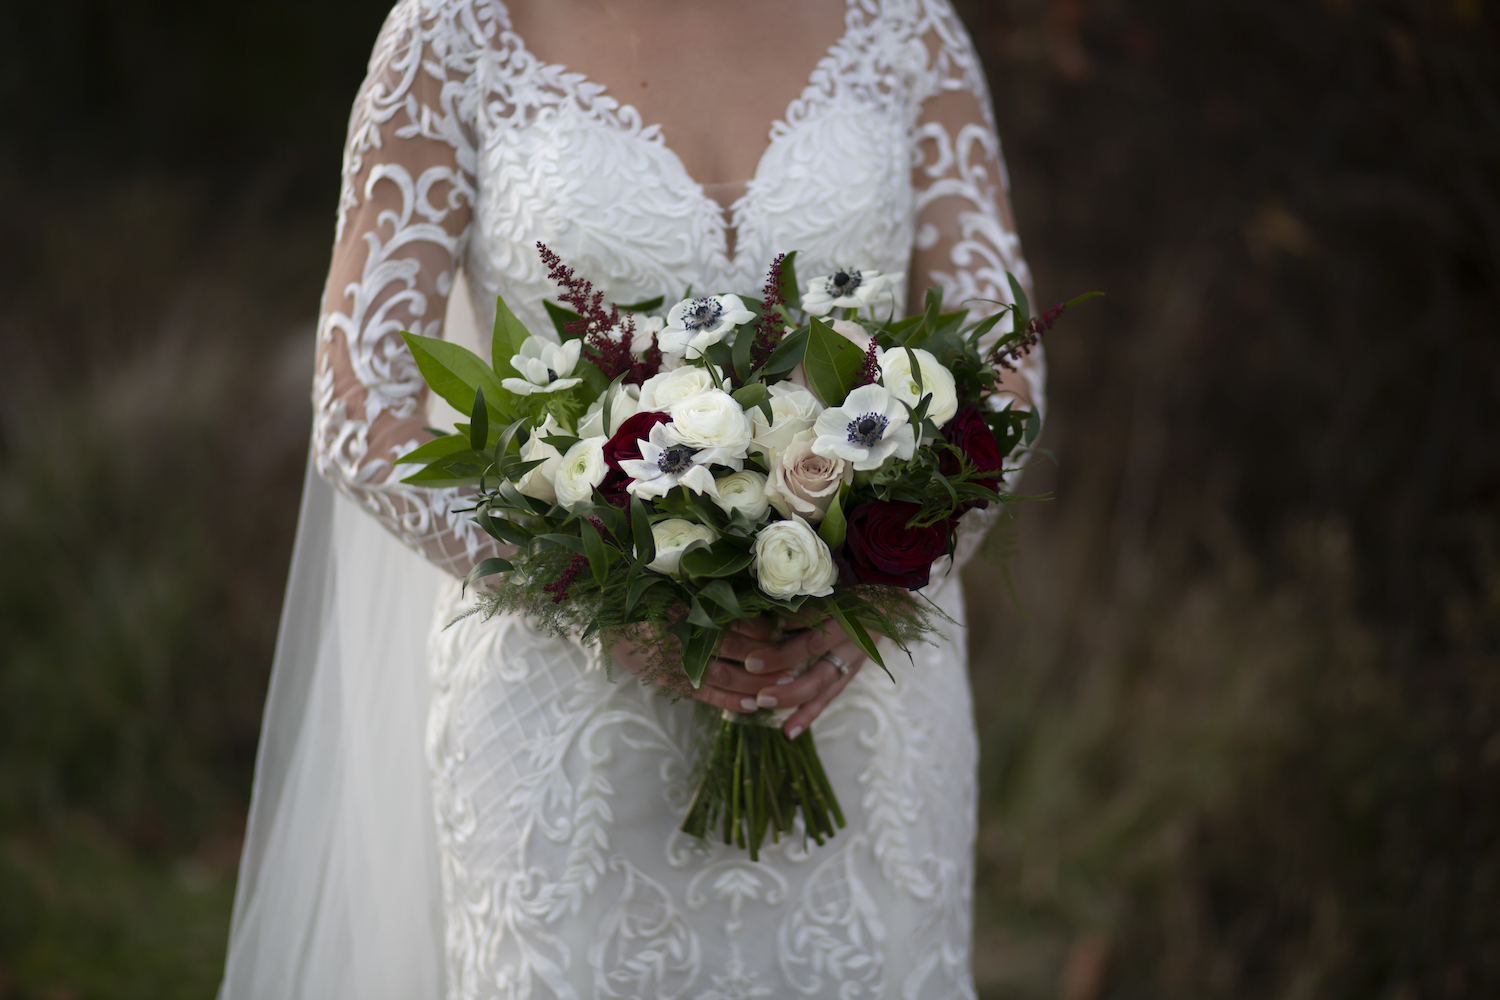 Bride's flower bouquet for rustic Michigan wedding